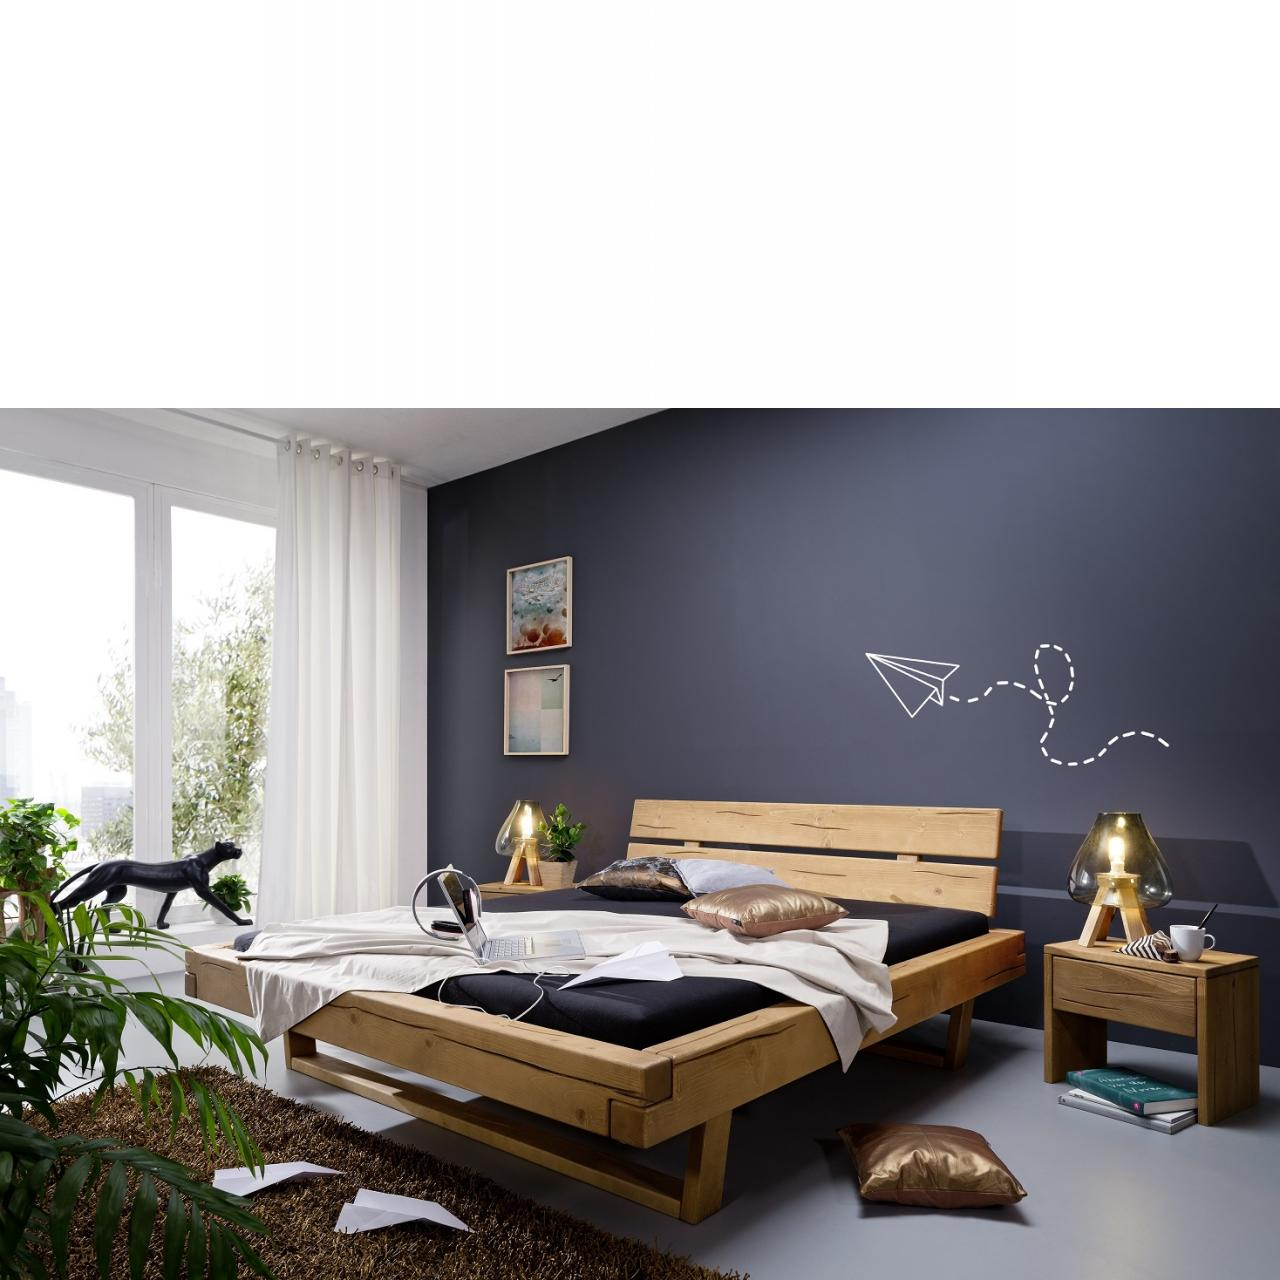 Full Size of Massivholz Esstisch Bette Floor Bett Nussbaum 180x200 Stapelbar Regal Weiß Stabiles Prinzessinen Betten Günstig Kaufen Home Affaire Kiefer 90x200 140x200 Bett Massiv Bett 180x200